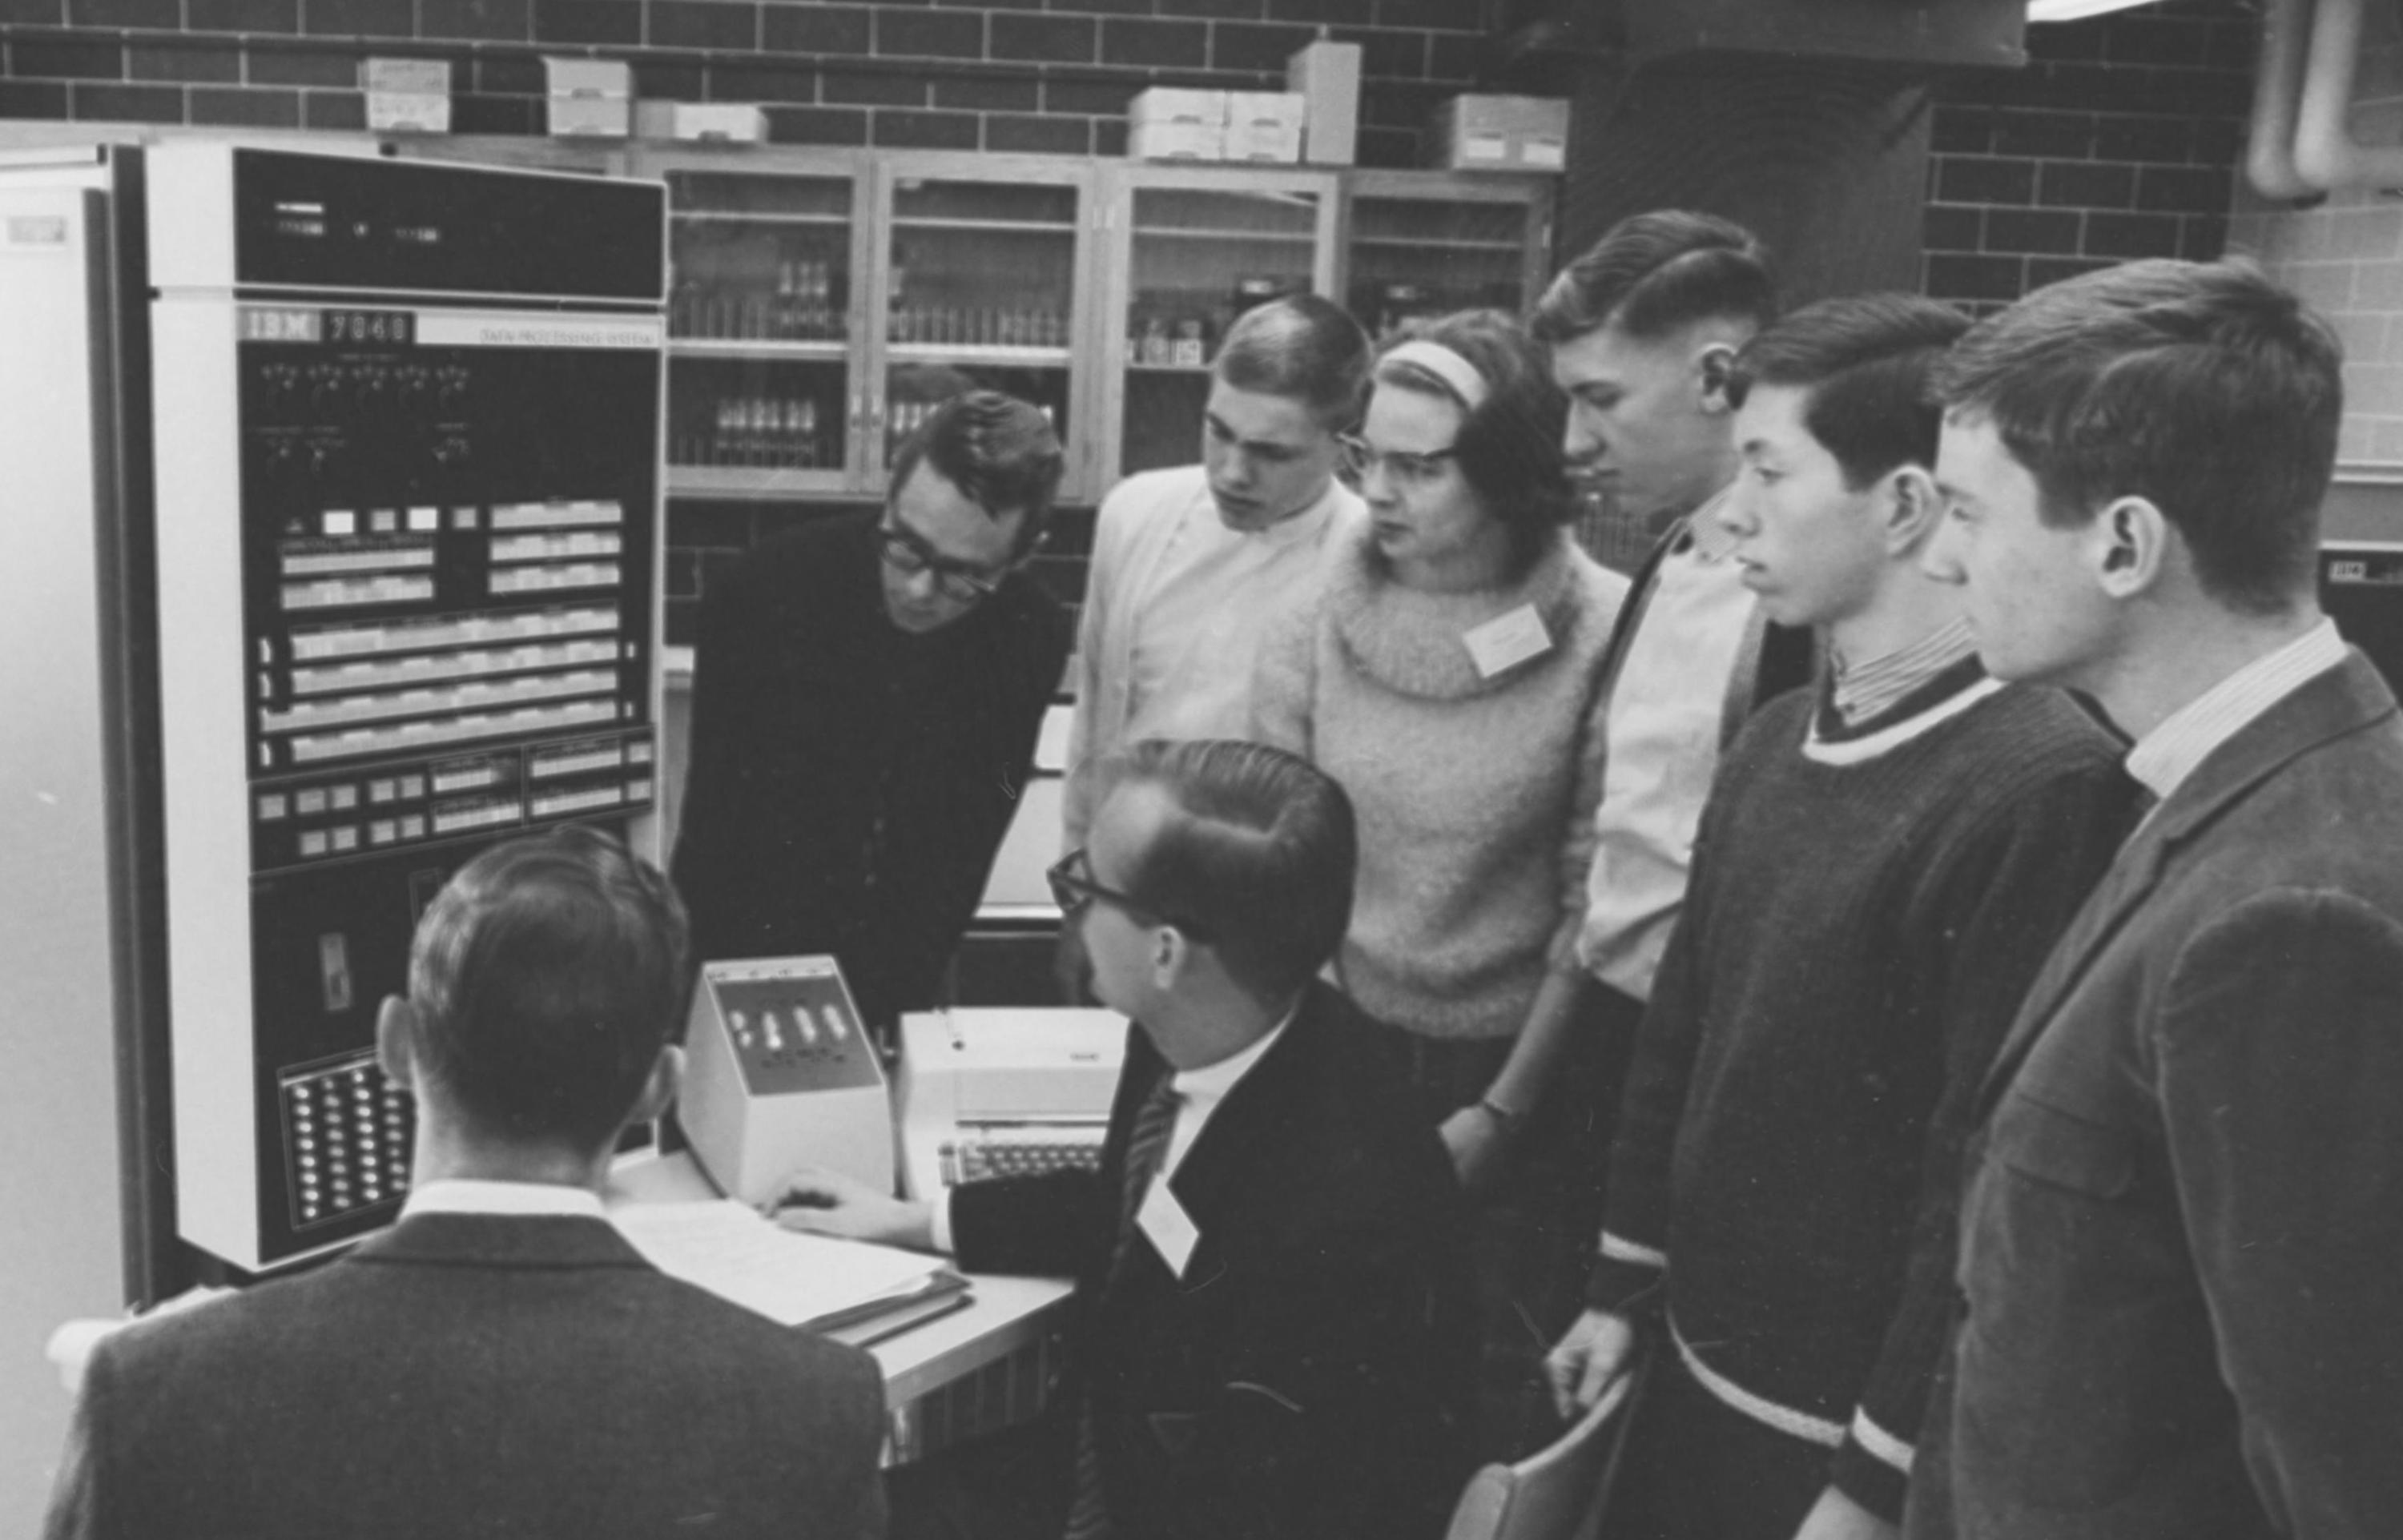 Image of Donald Cowan seated while explaining a computer to high school students.